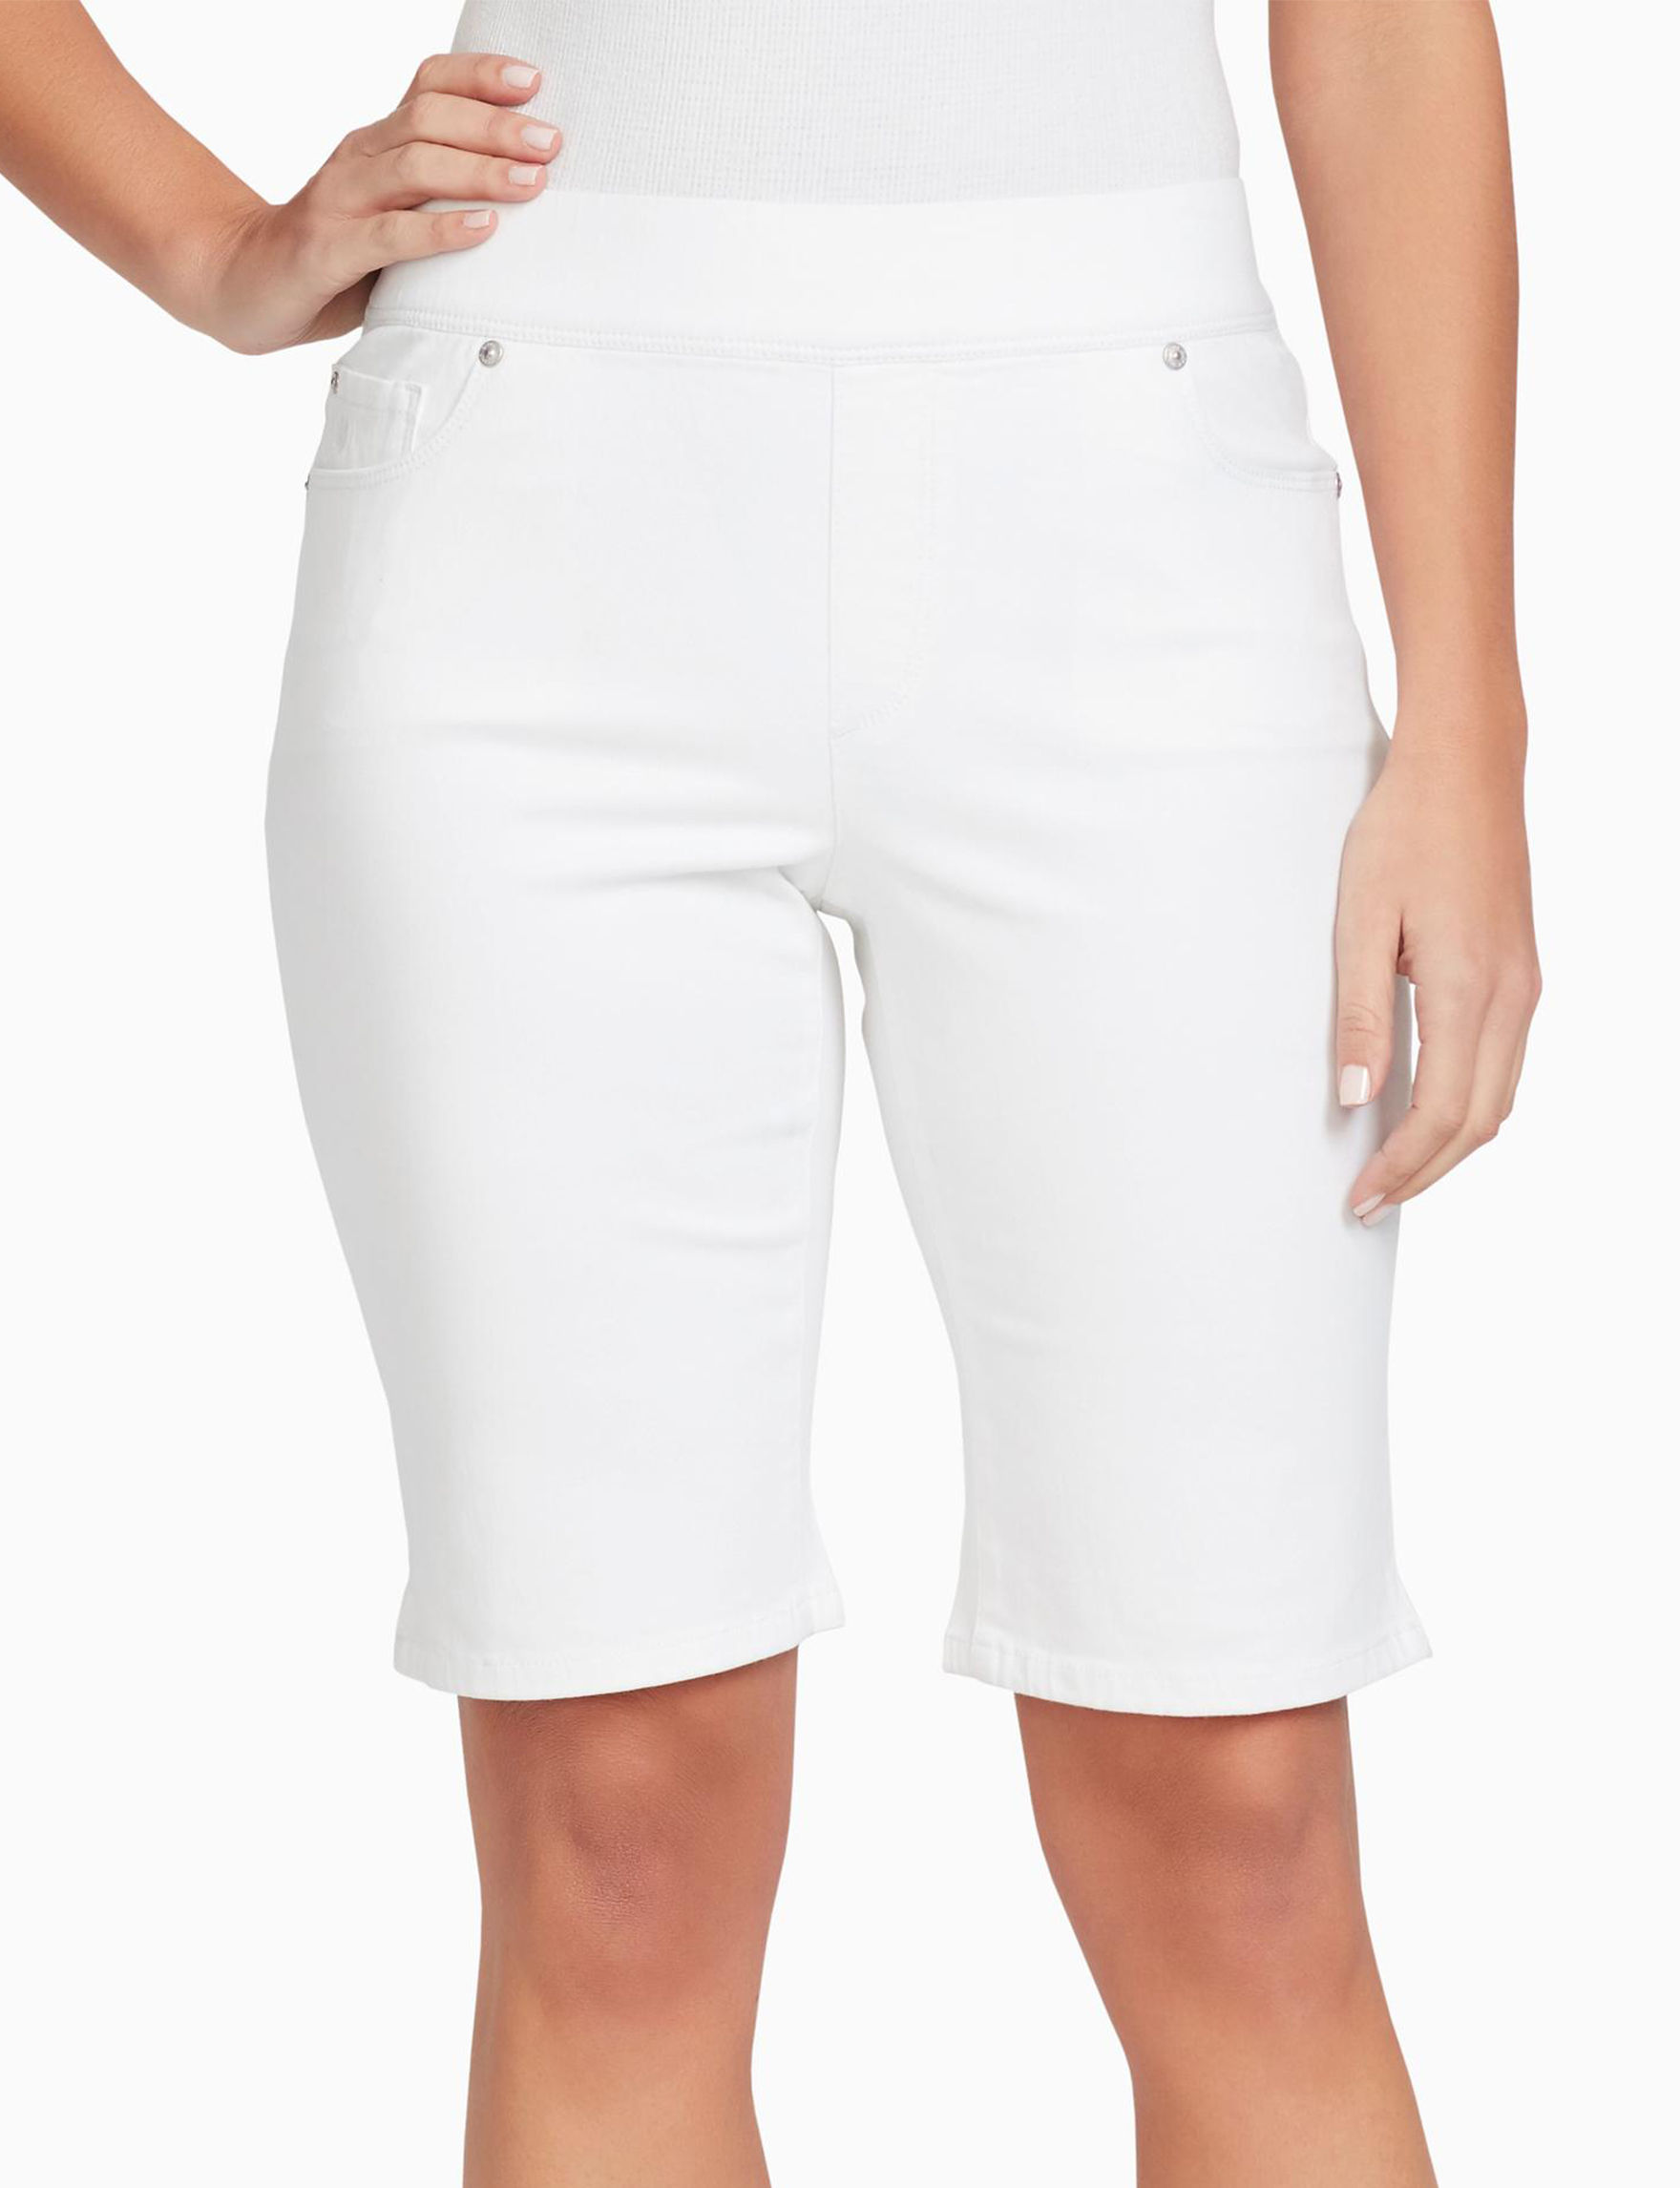 Gloria Vanderbilt White Bermudas Stretch